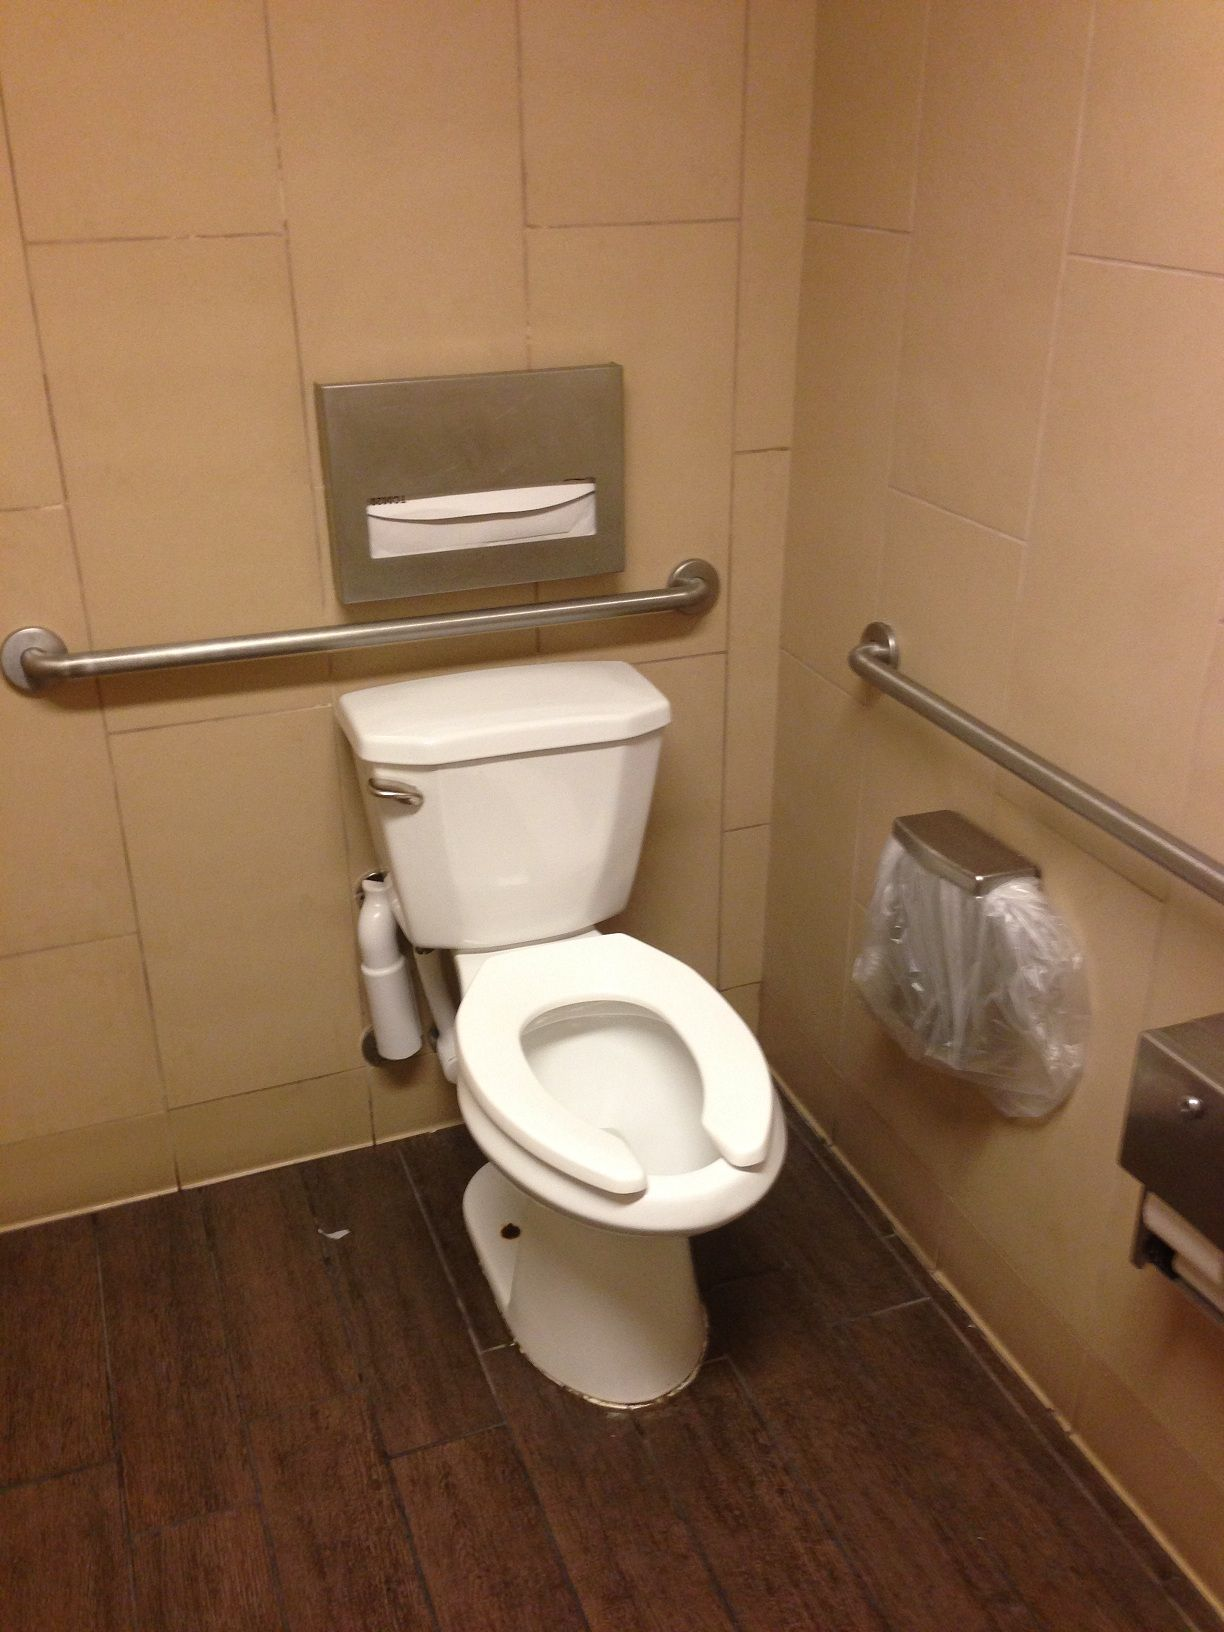 Design Space Bathrooms Ada I Have Seen This In Bathrooms A Lot The Seat Cover Dispenser Is Mounted Upsid Grab Bars In Bathroom Ada Bathroom Bathroom Seat